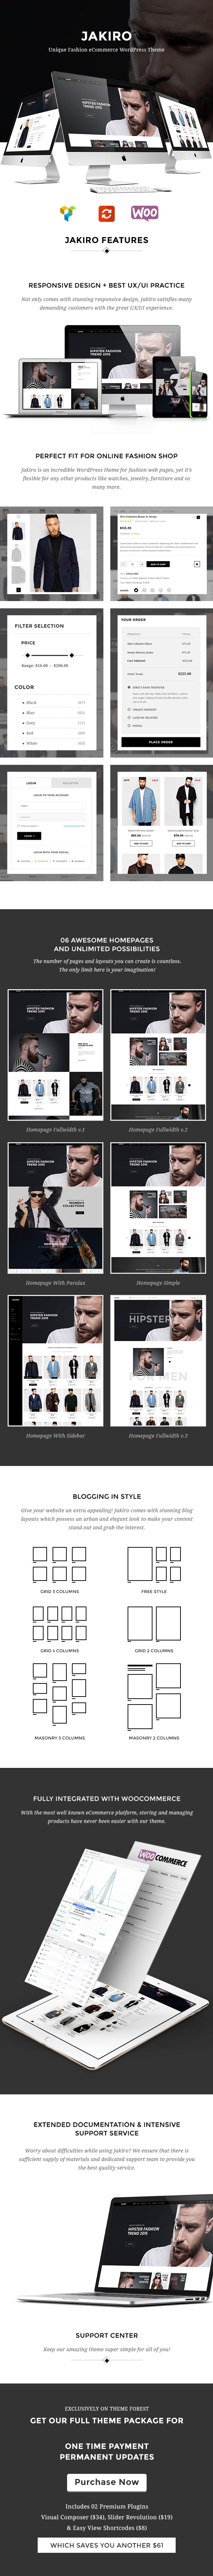 Jakiro - Unique Fashion Shop WordPress Theme